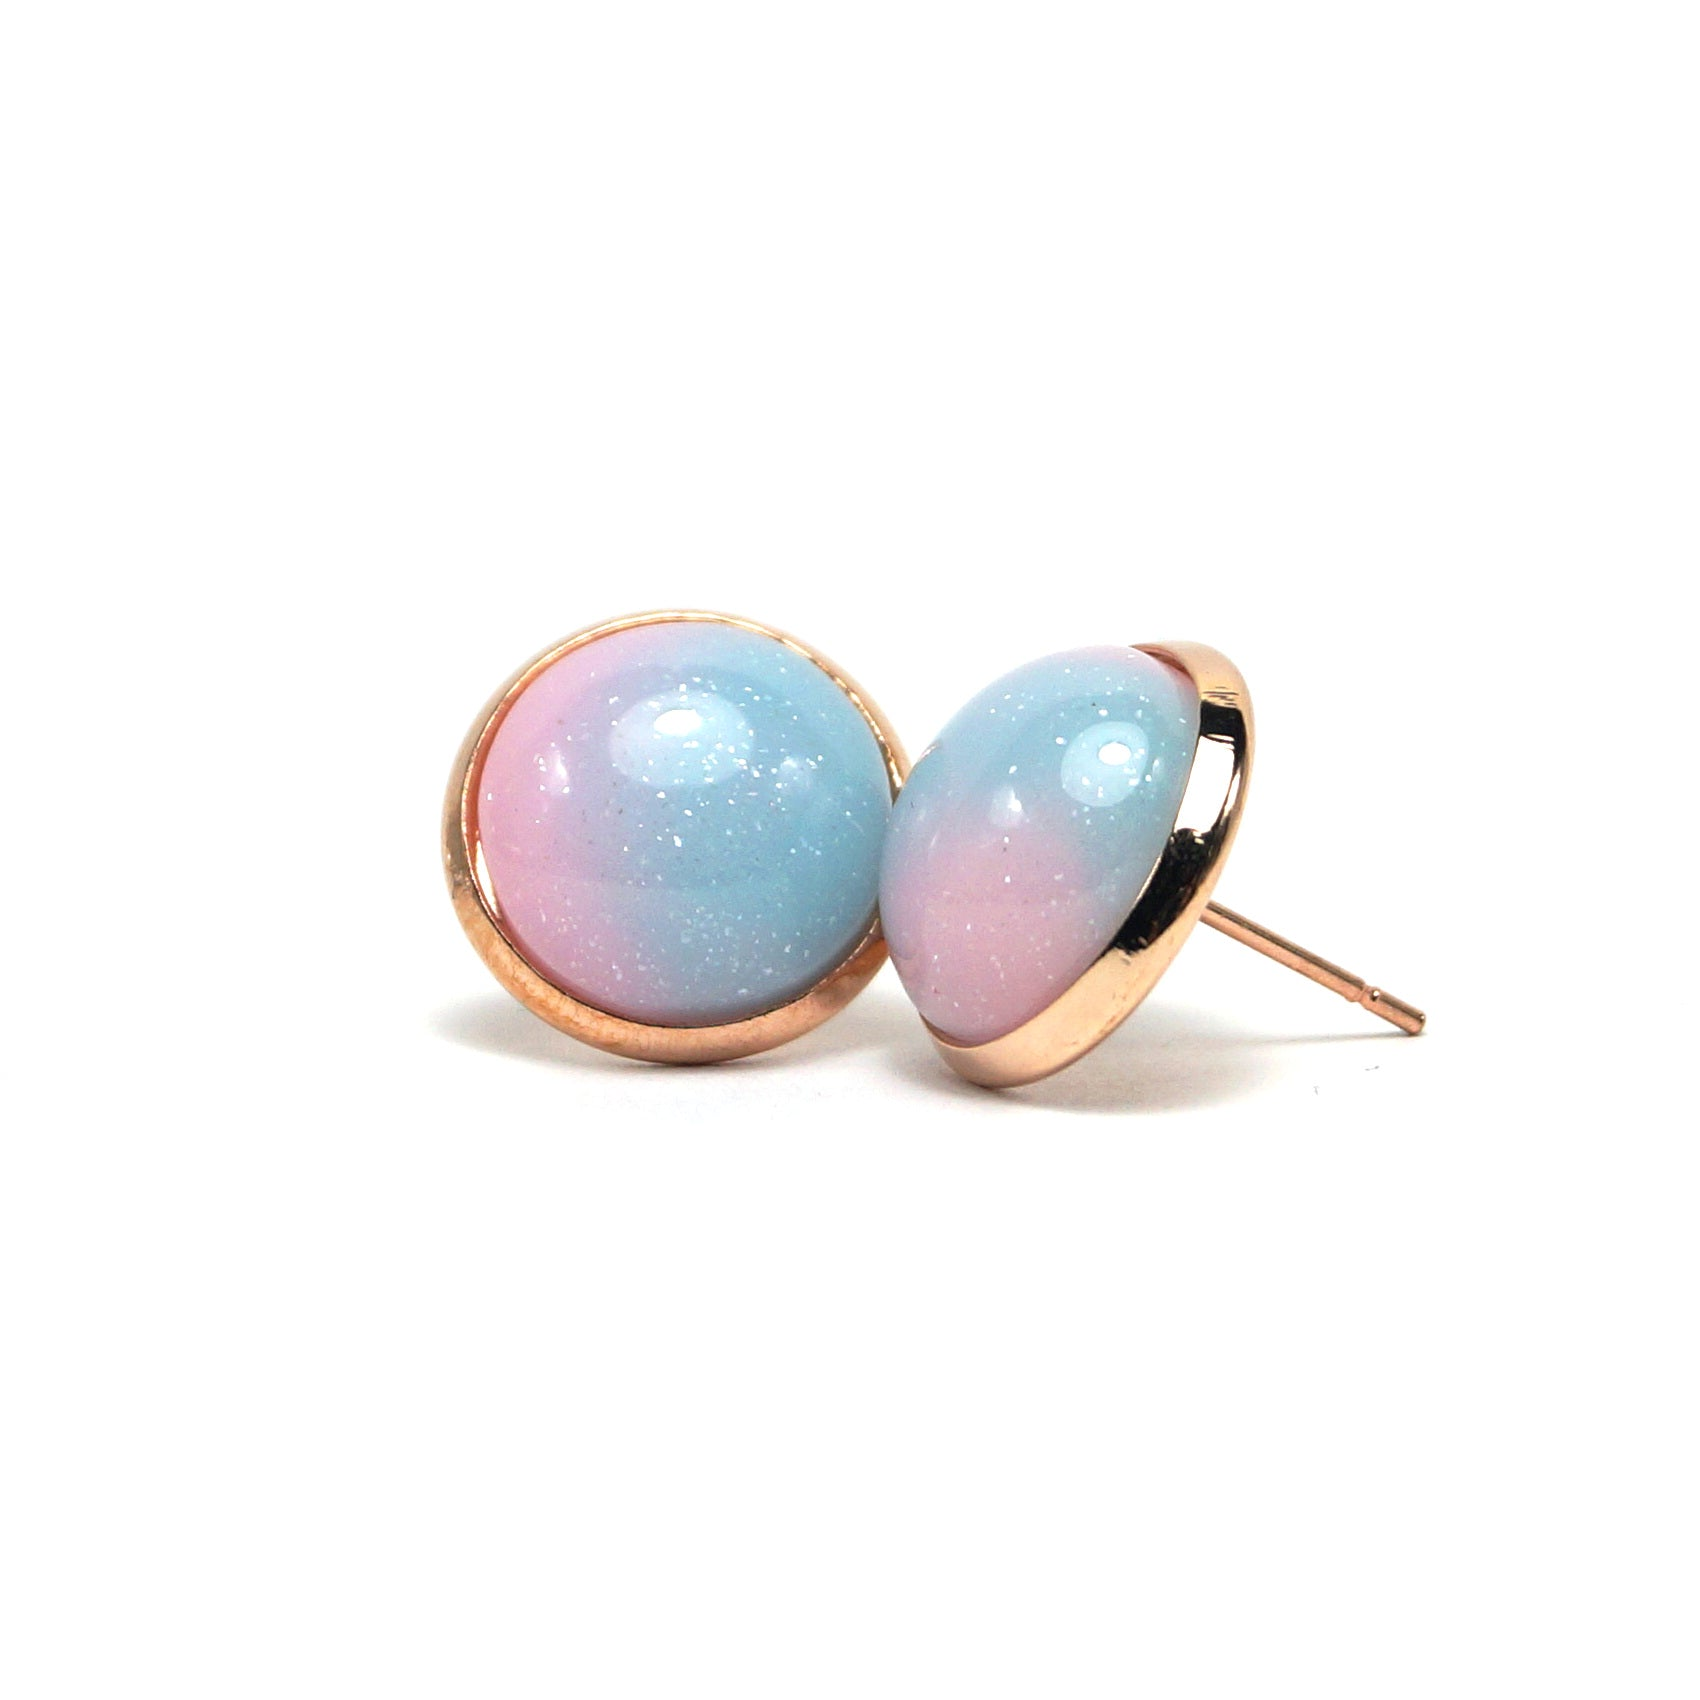 Cotton Candy Stud Earrings (14mm)